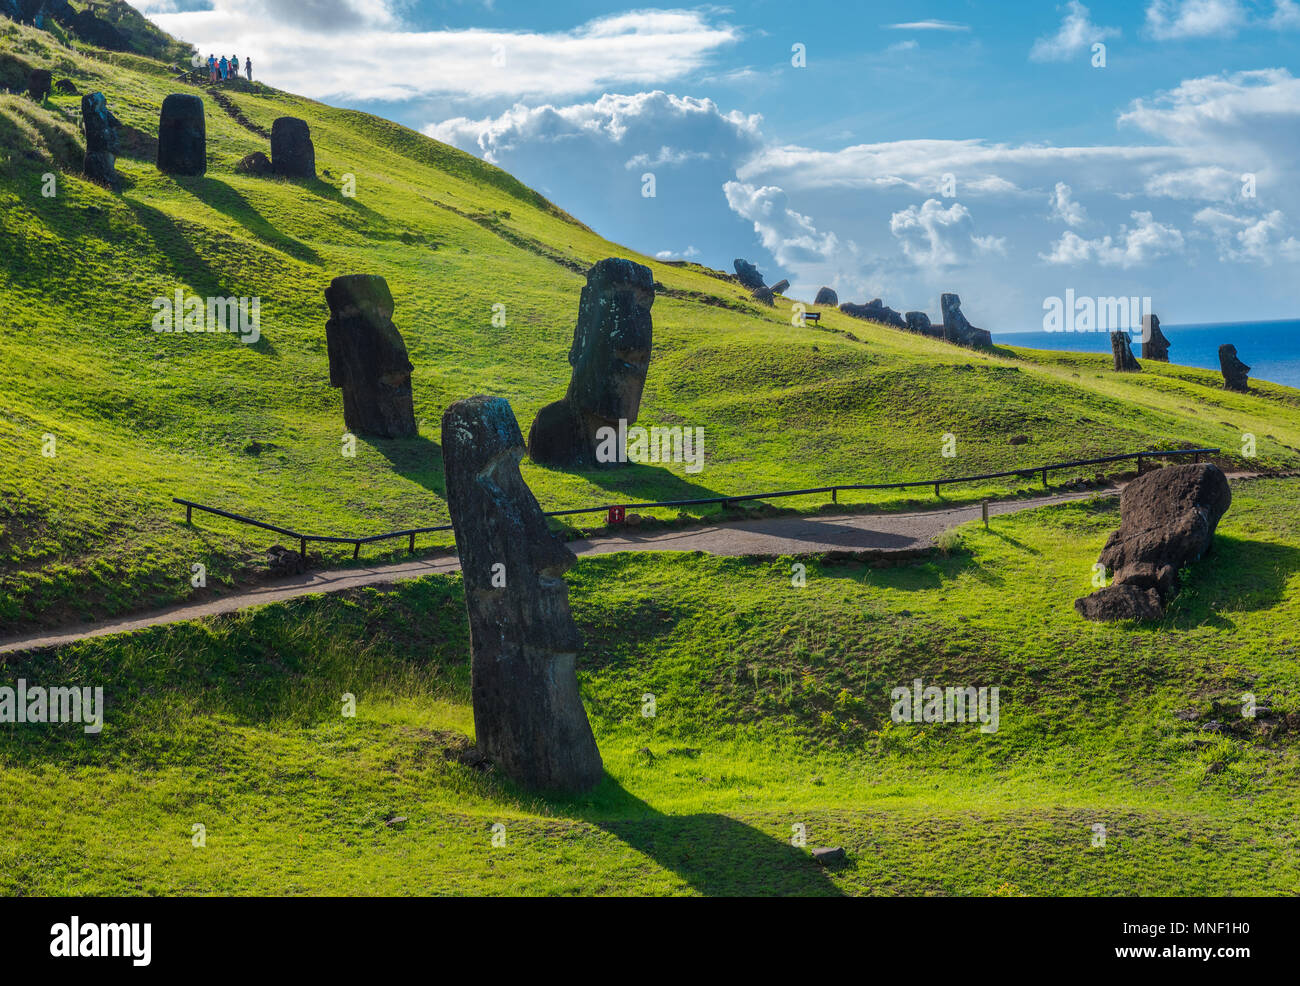 Moai statues on Easter Island readdied for transport before being mysteriously abandoned. - Stock Image